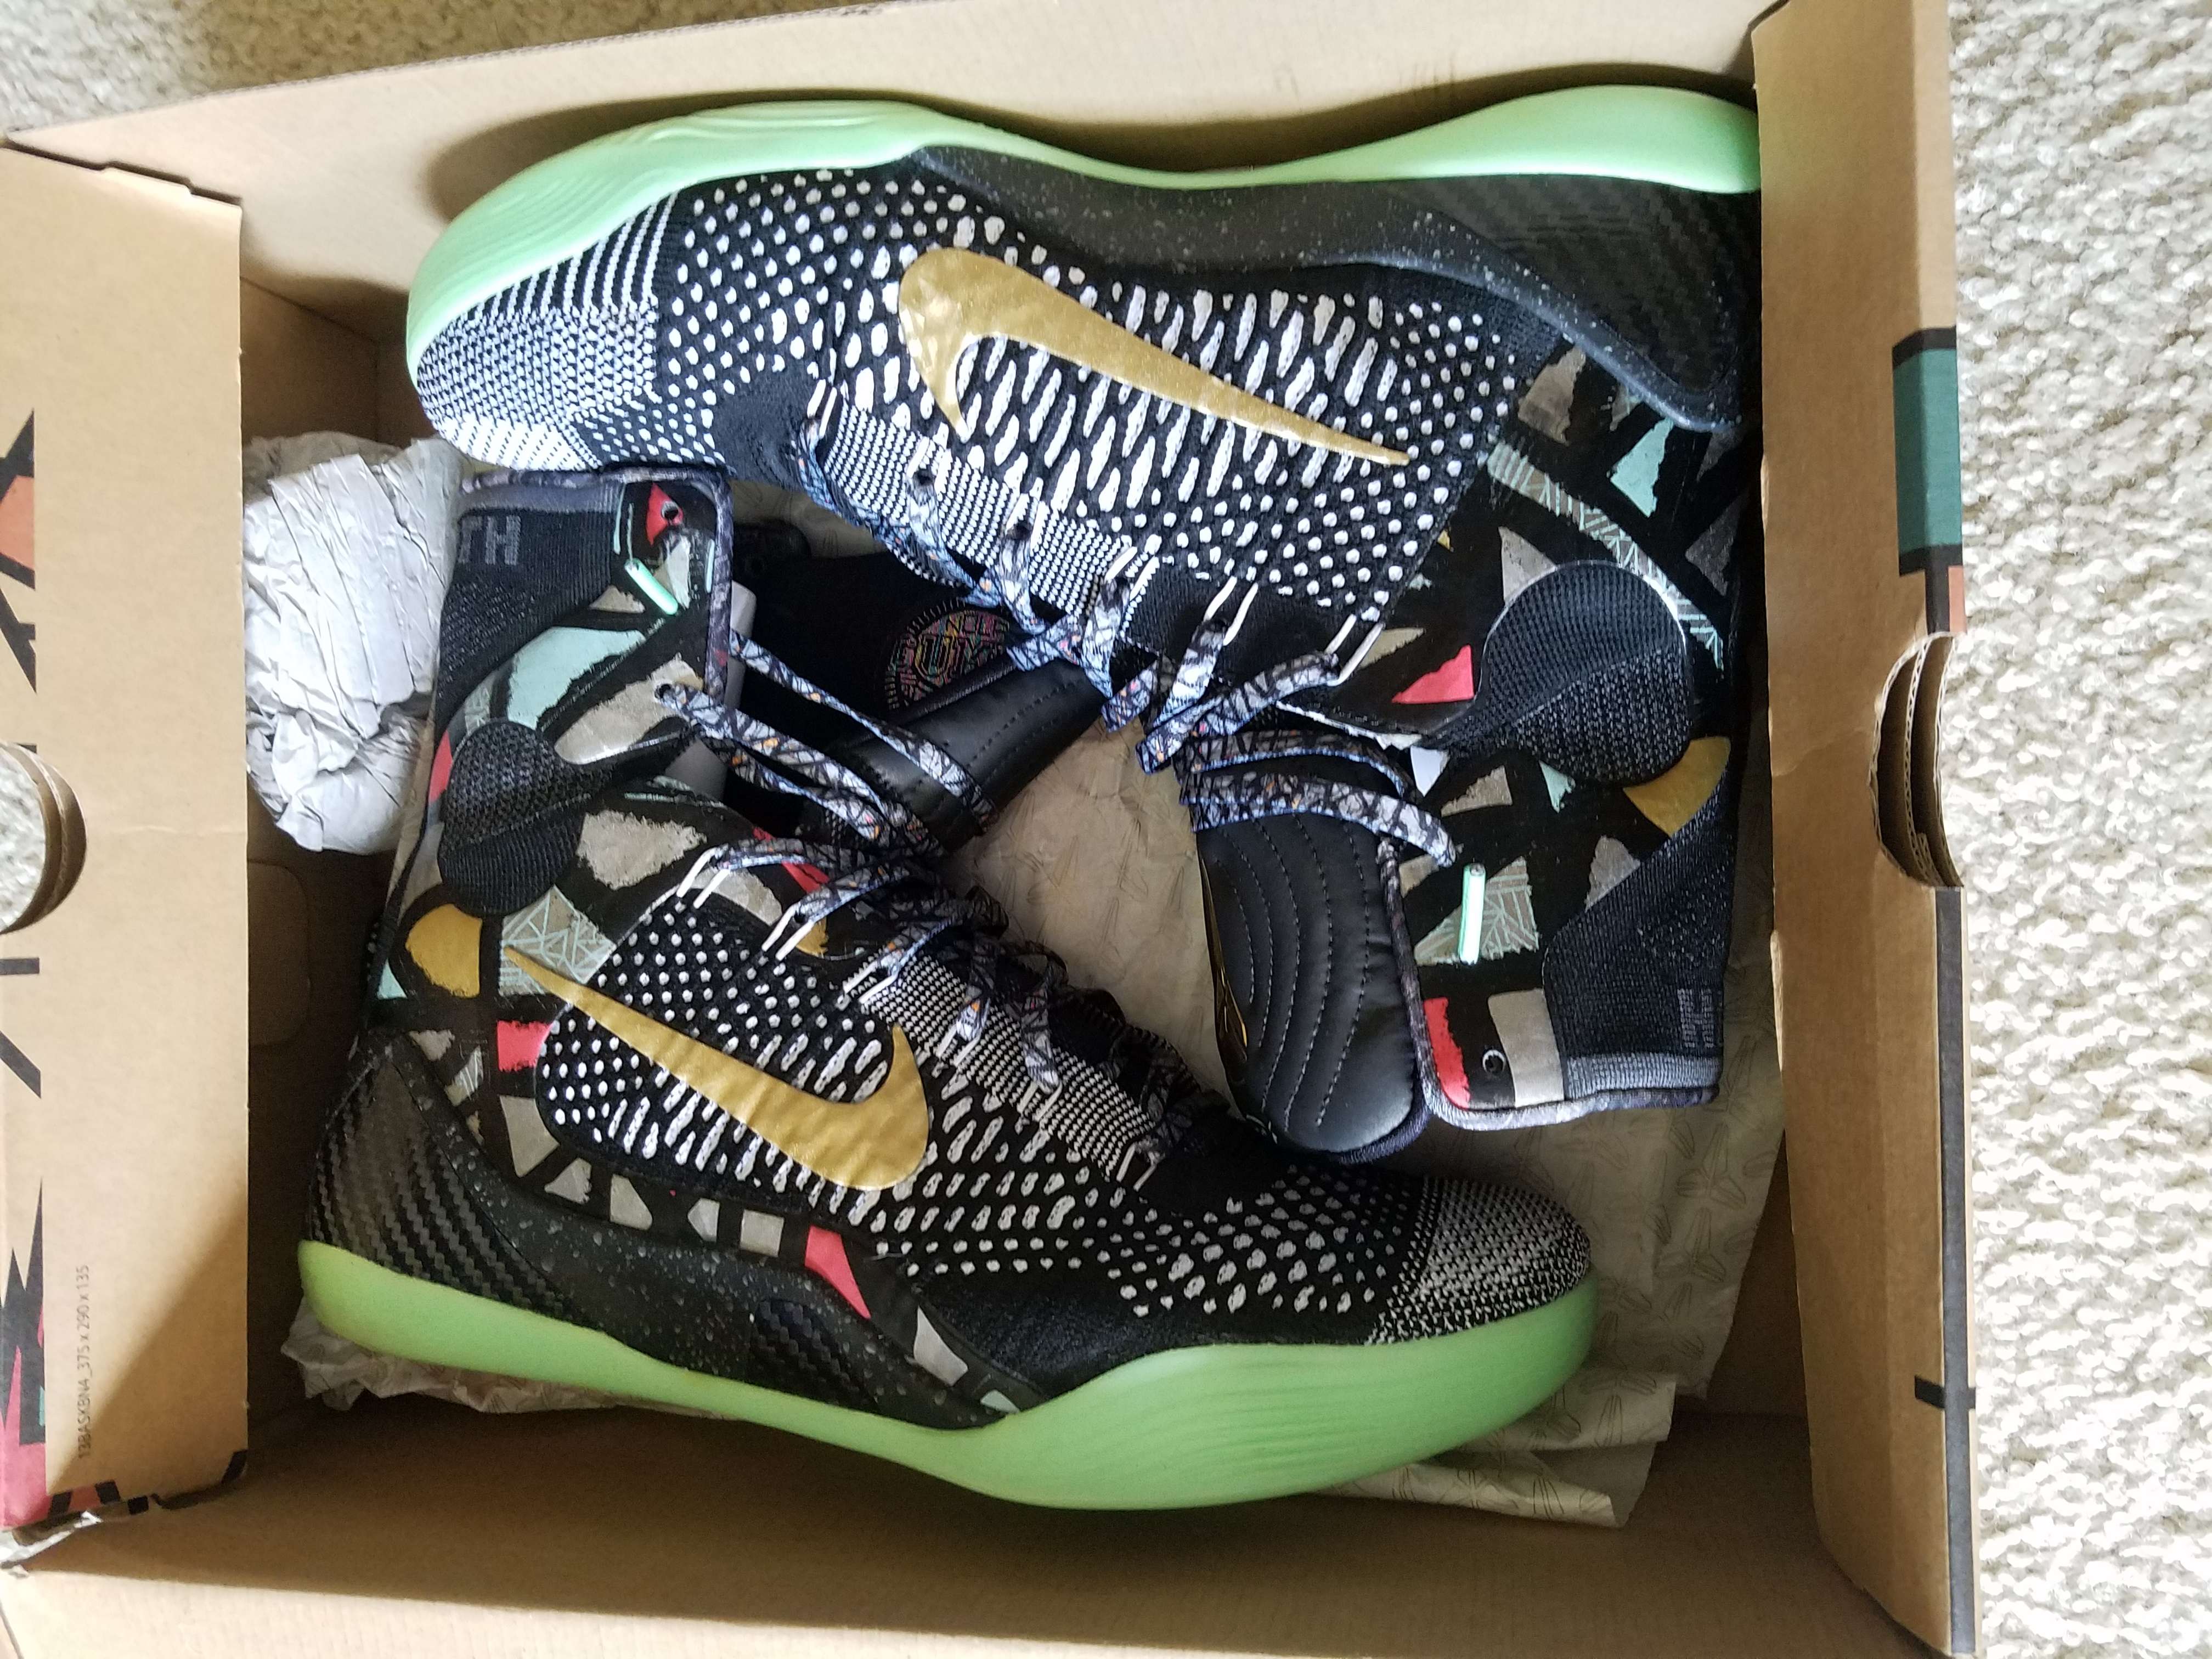 big sale ecb85 f2e0b Nike Kobe 9 Elite All-Star Game  Maestro - Gumbo Pack  Size 11 - Hi-Top  Sneakers for Sale - Grailed